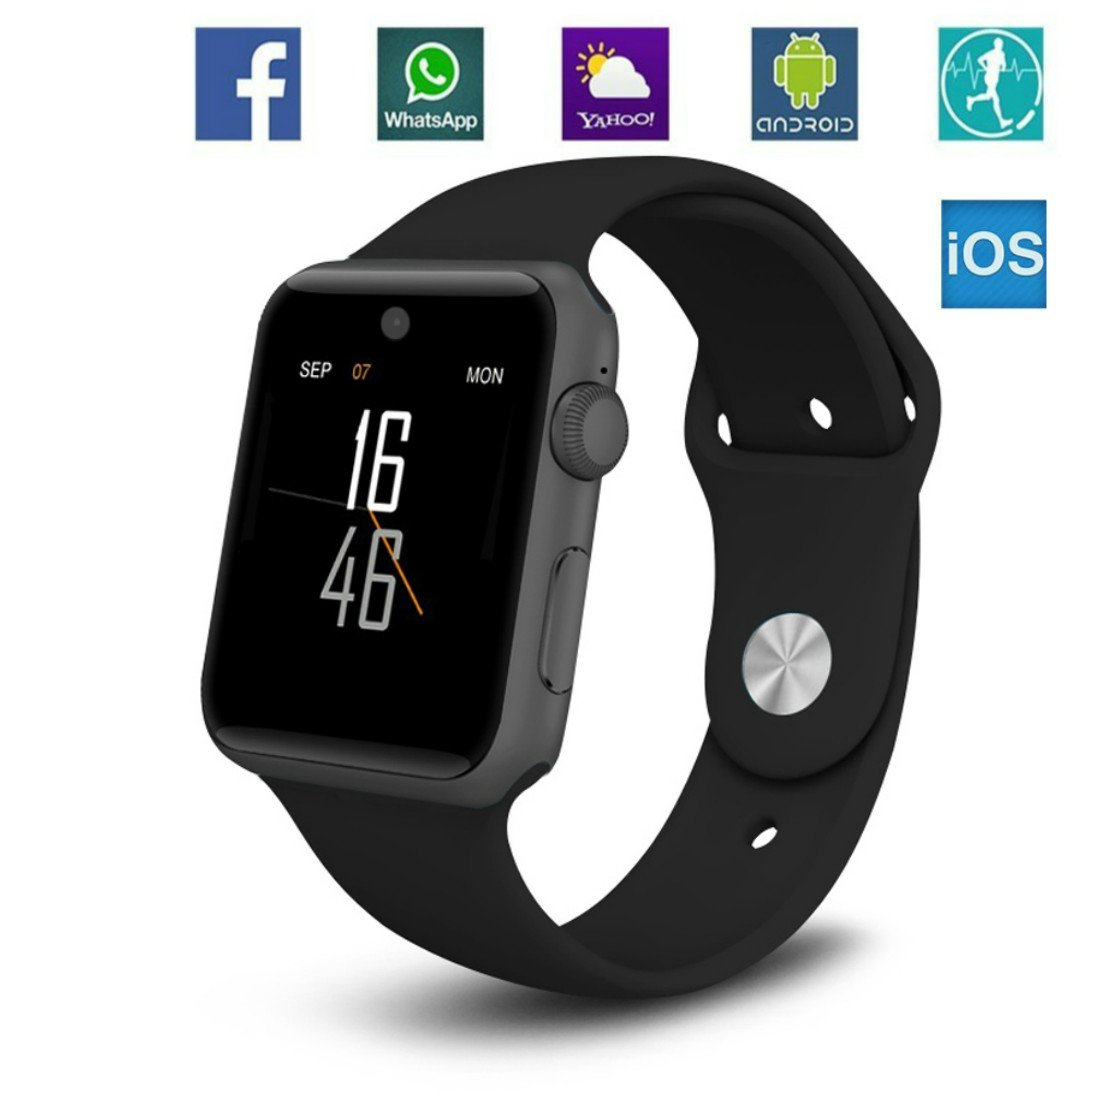 Smartwatch Bluetooth Smart Watch Sport Health Watch Support SIM Card with Camera Pedometer Sleep Monitor Notification Alert Compatible with iOS iPhone Apple Android for Men Women Teens Kids (Black) by Baoxin